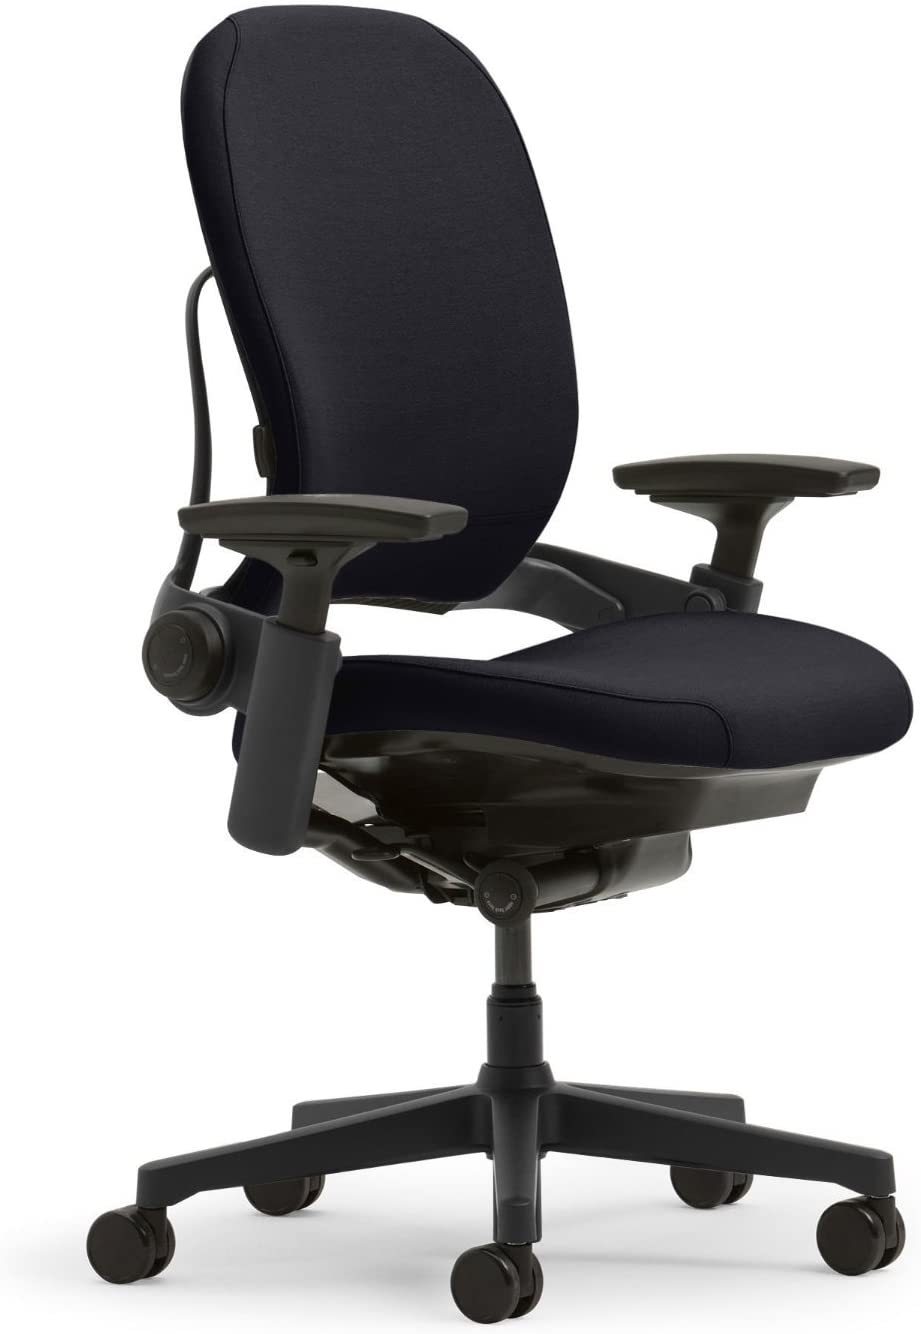 Steelcase Leap Ergonomic Office Chair with Flexible Back | Adjustable Lumbar, Seat, and Arms | Black Frame and Fabric